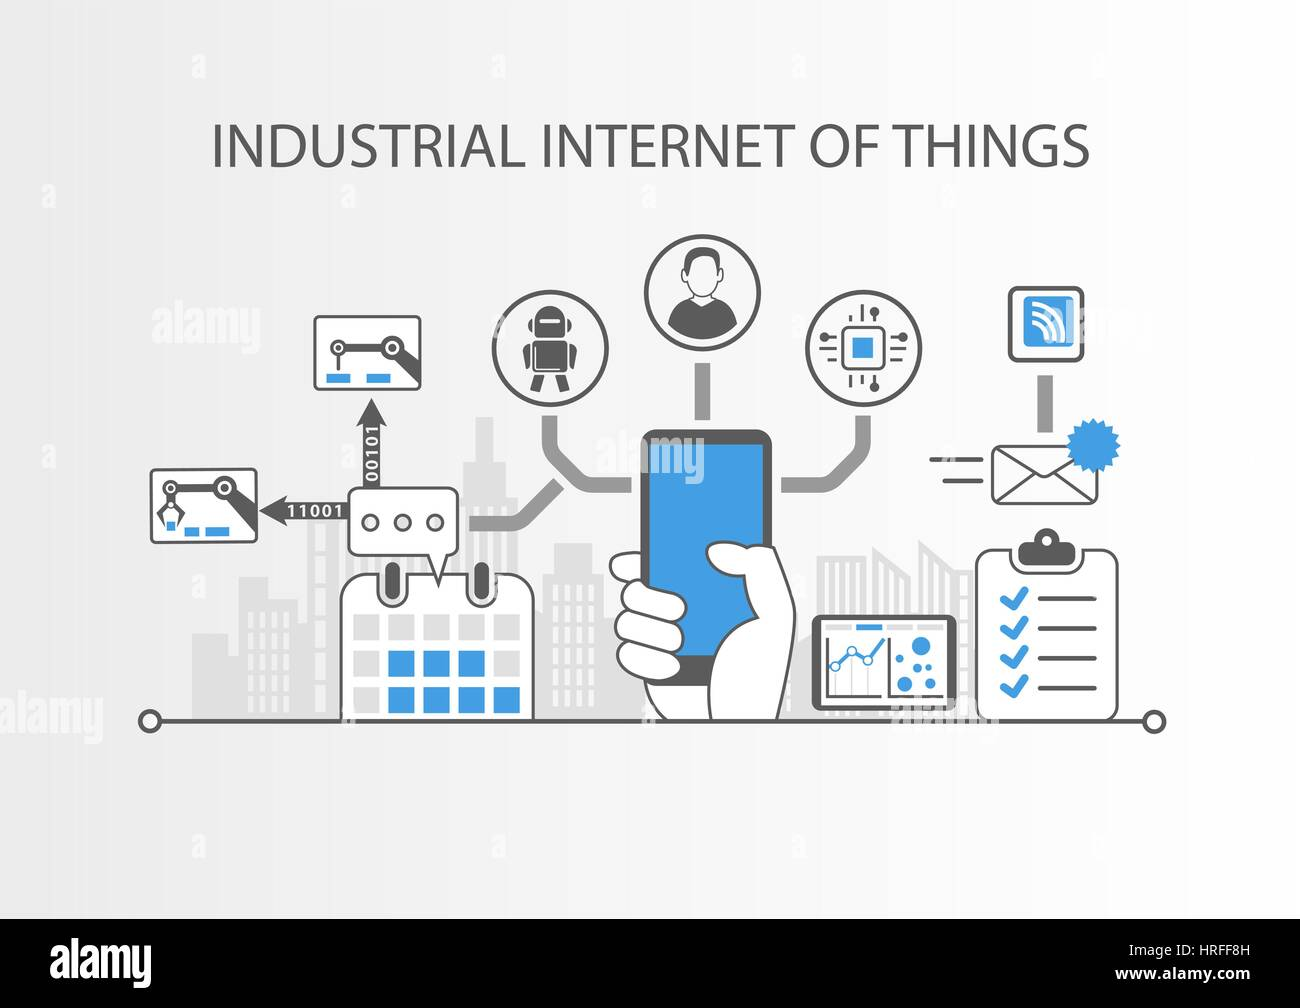 The Industrial Internet of Things Industry 4.0